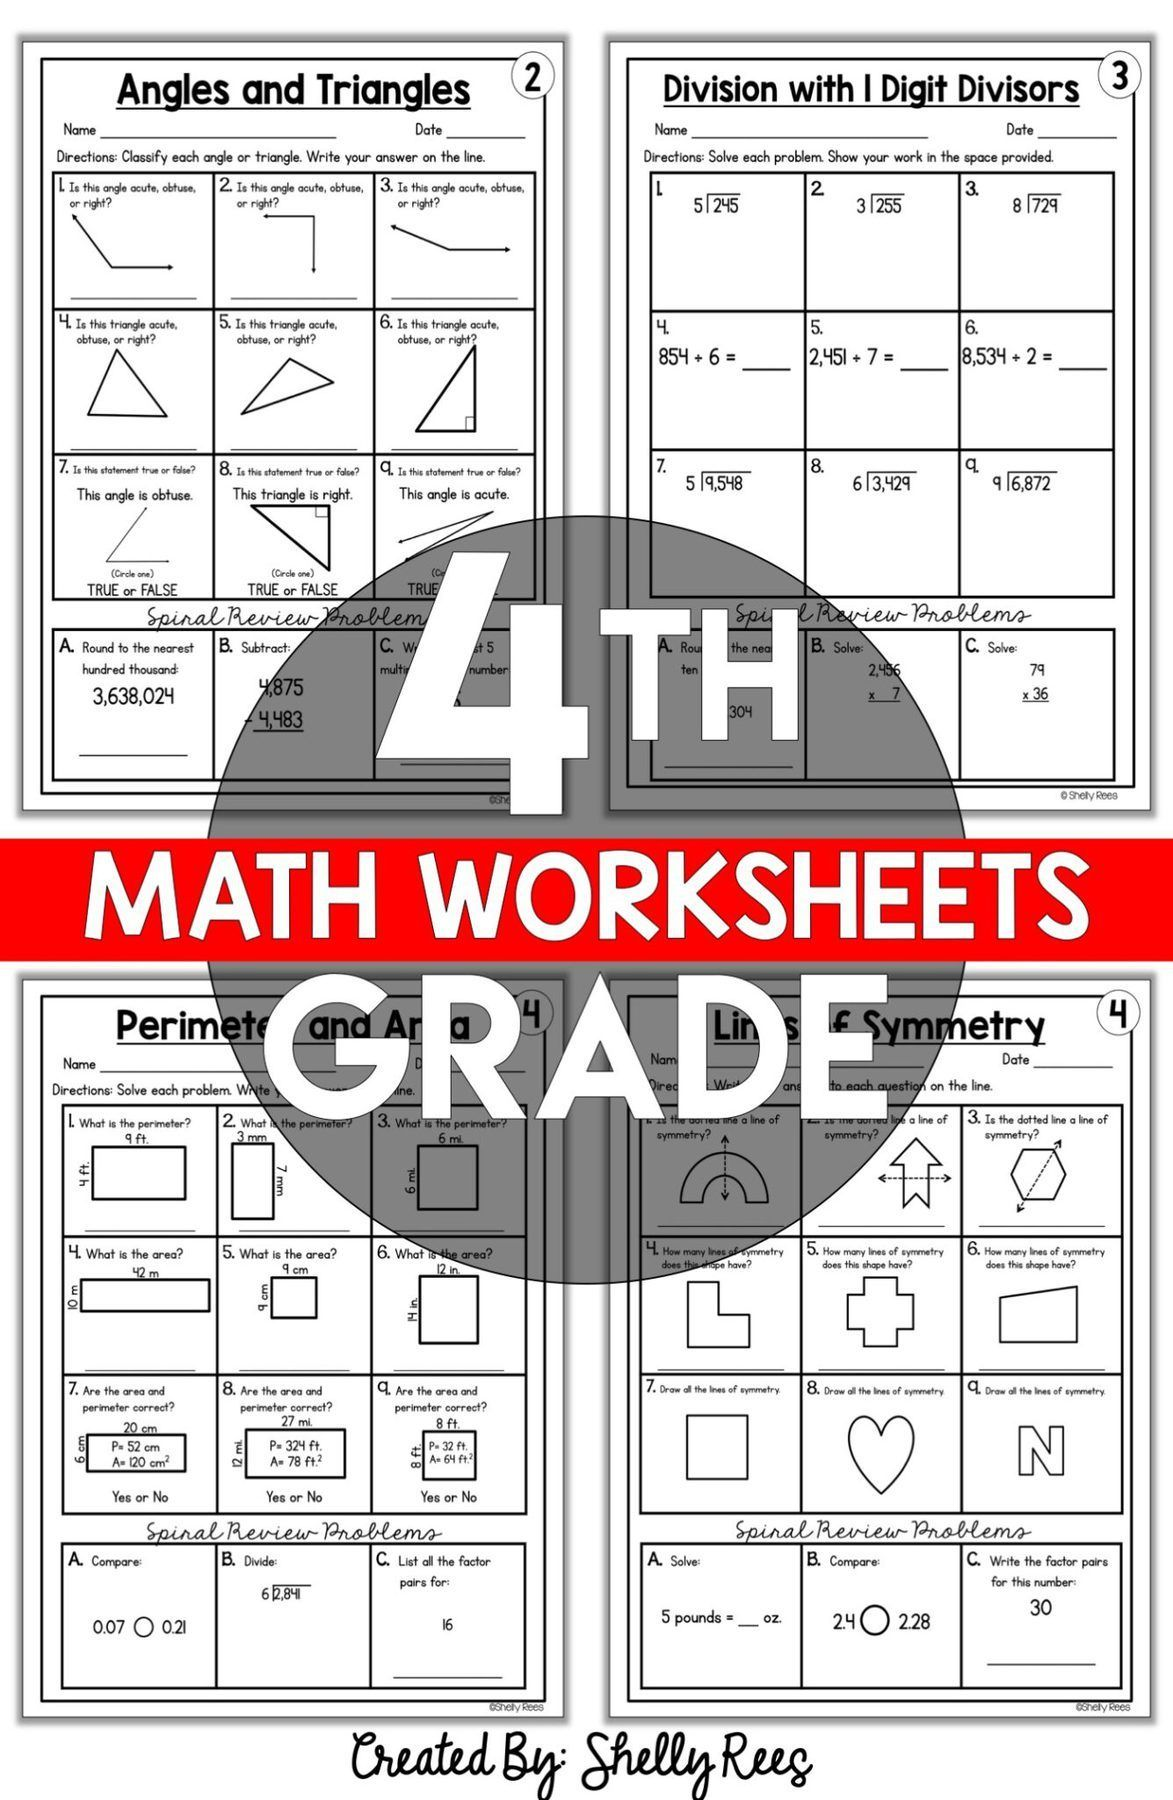 hight resolution of 4th Grade Math Worksheets Free and Printable - Appletastic Learning   4th  grade math worksheets